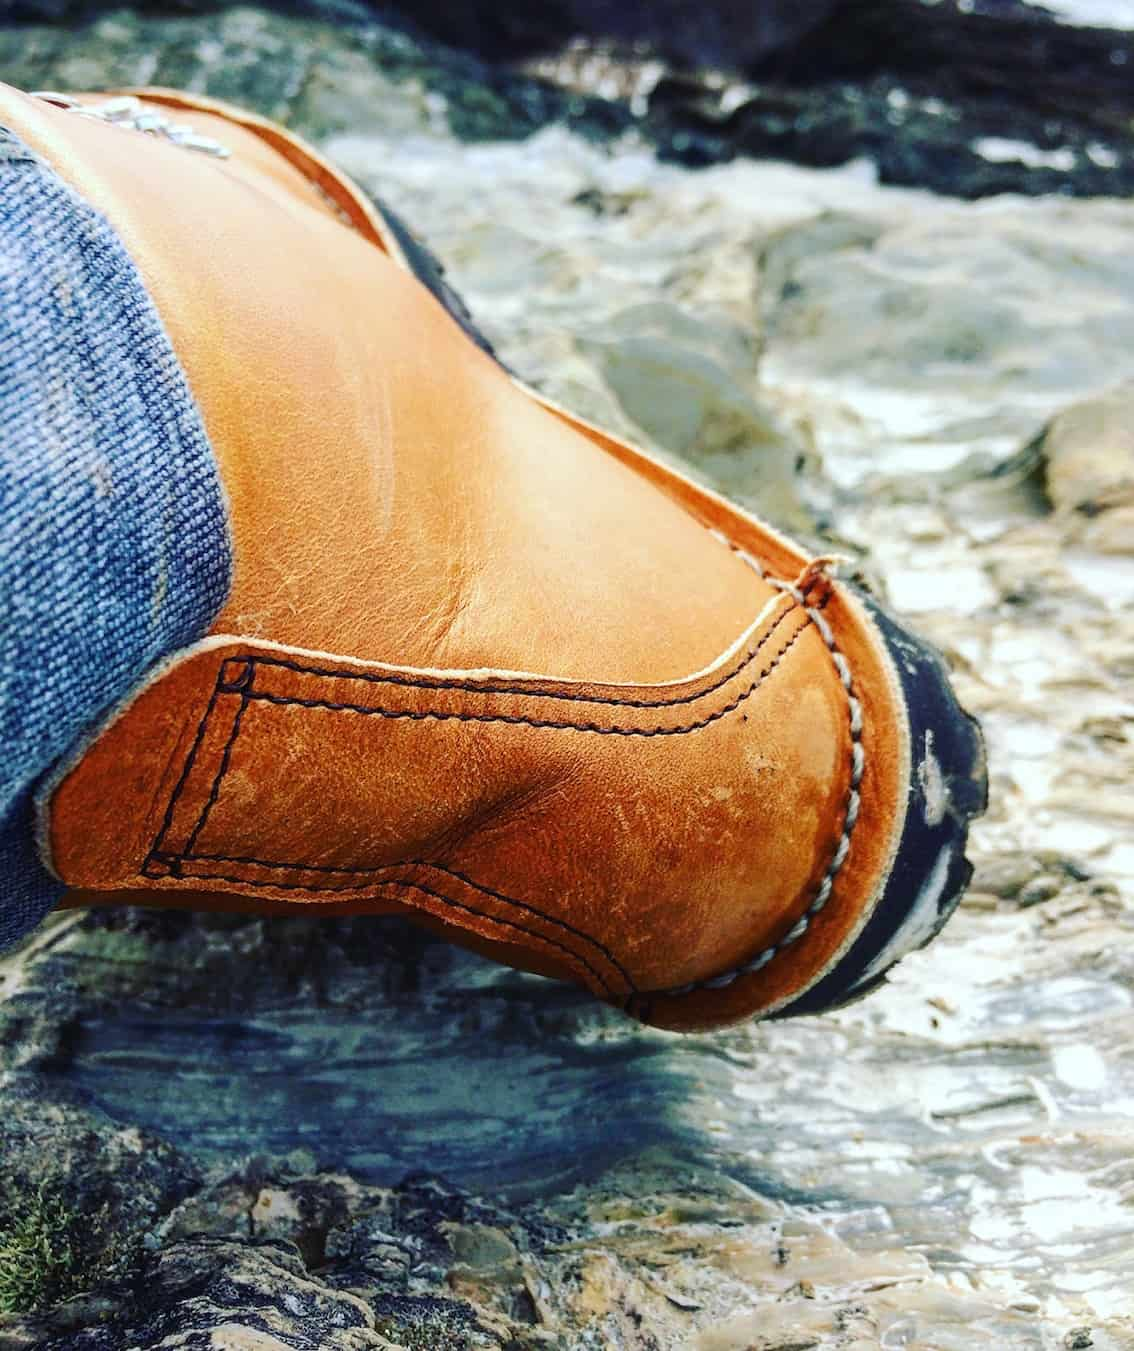 Vintage hiking boots with beautiful stitching